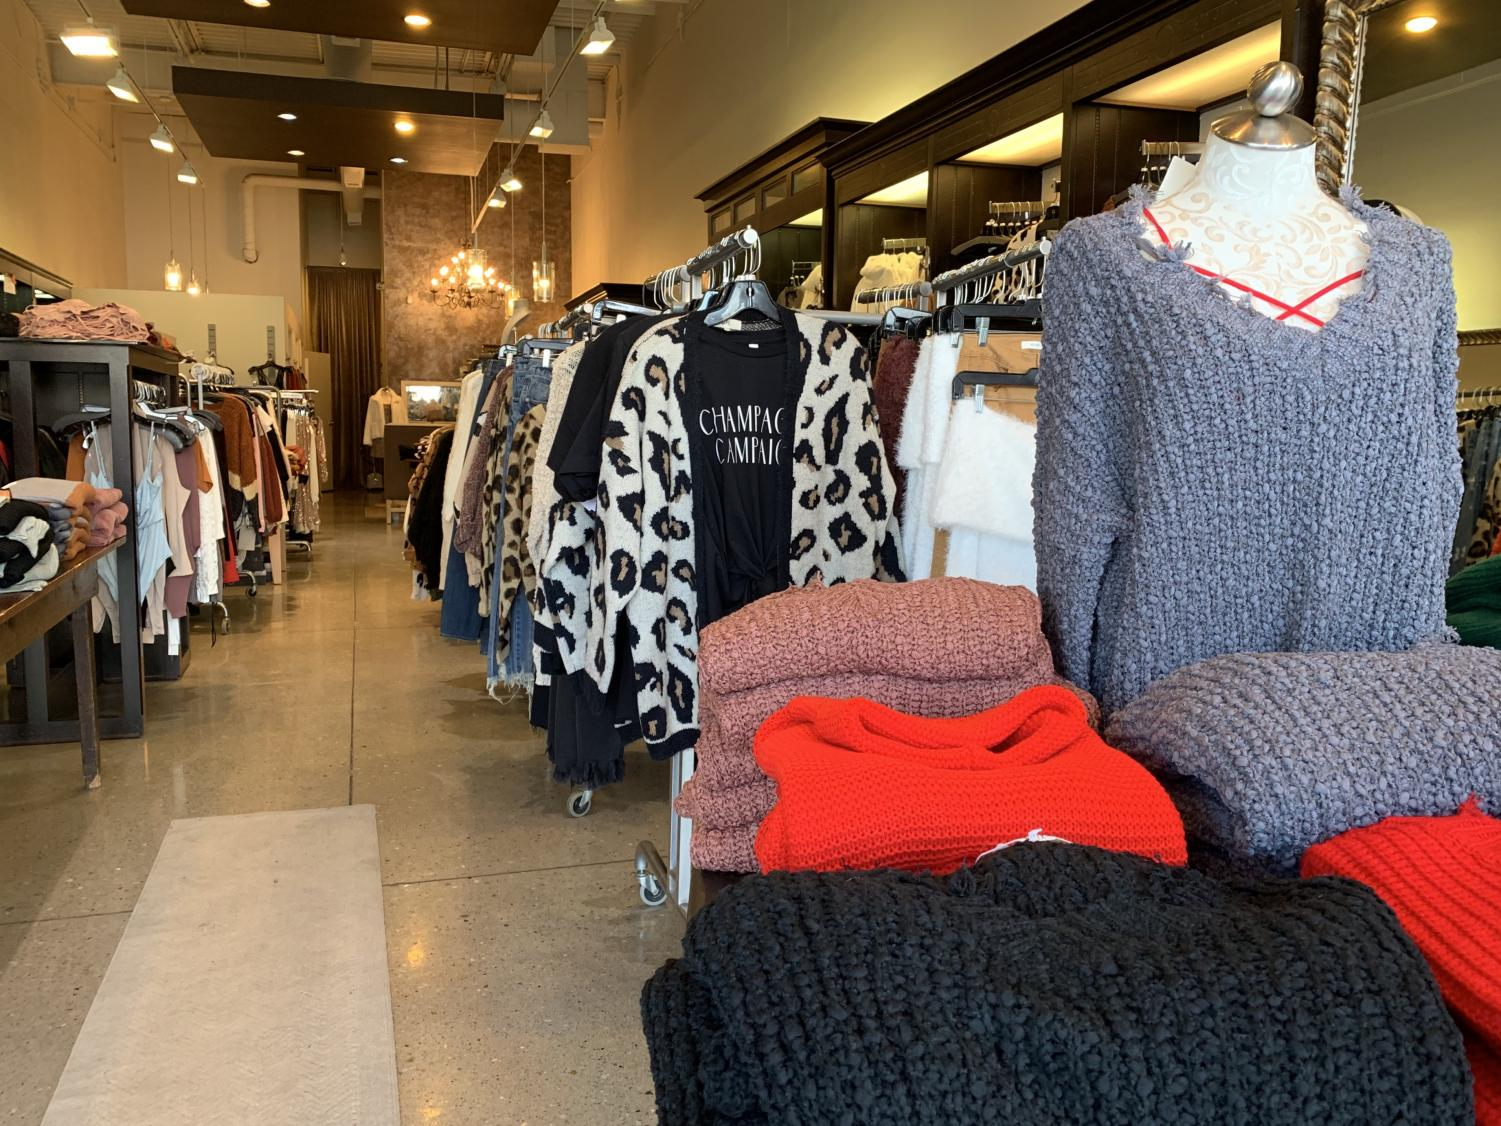 Mesh, a boutique in Shoppes of Legacy, adds to the small business community in Omaha. This fashion favorite provides affordable clothing for the perfect holiday gift while supporting the local economy.